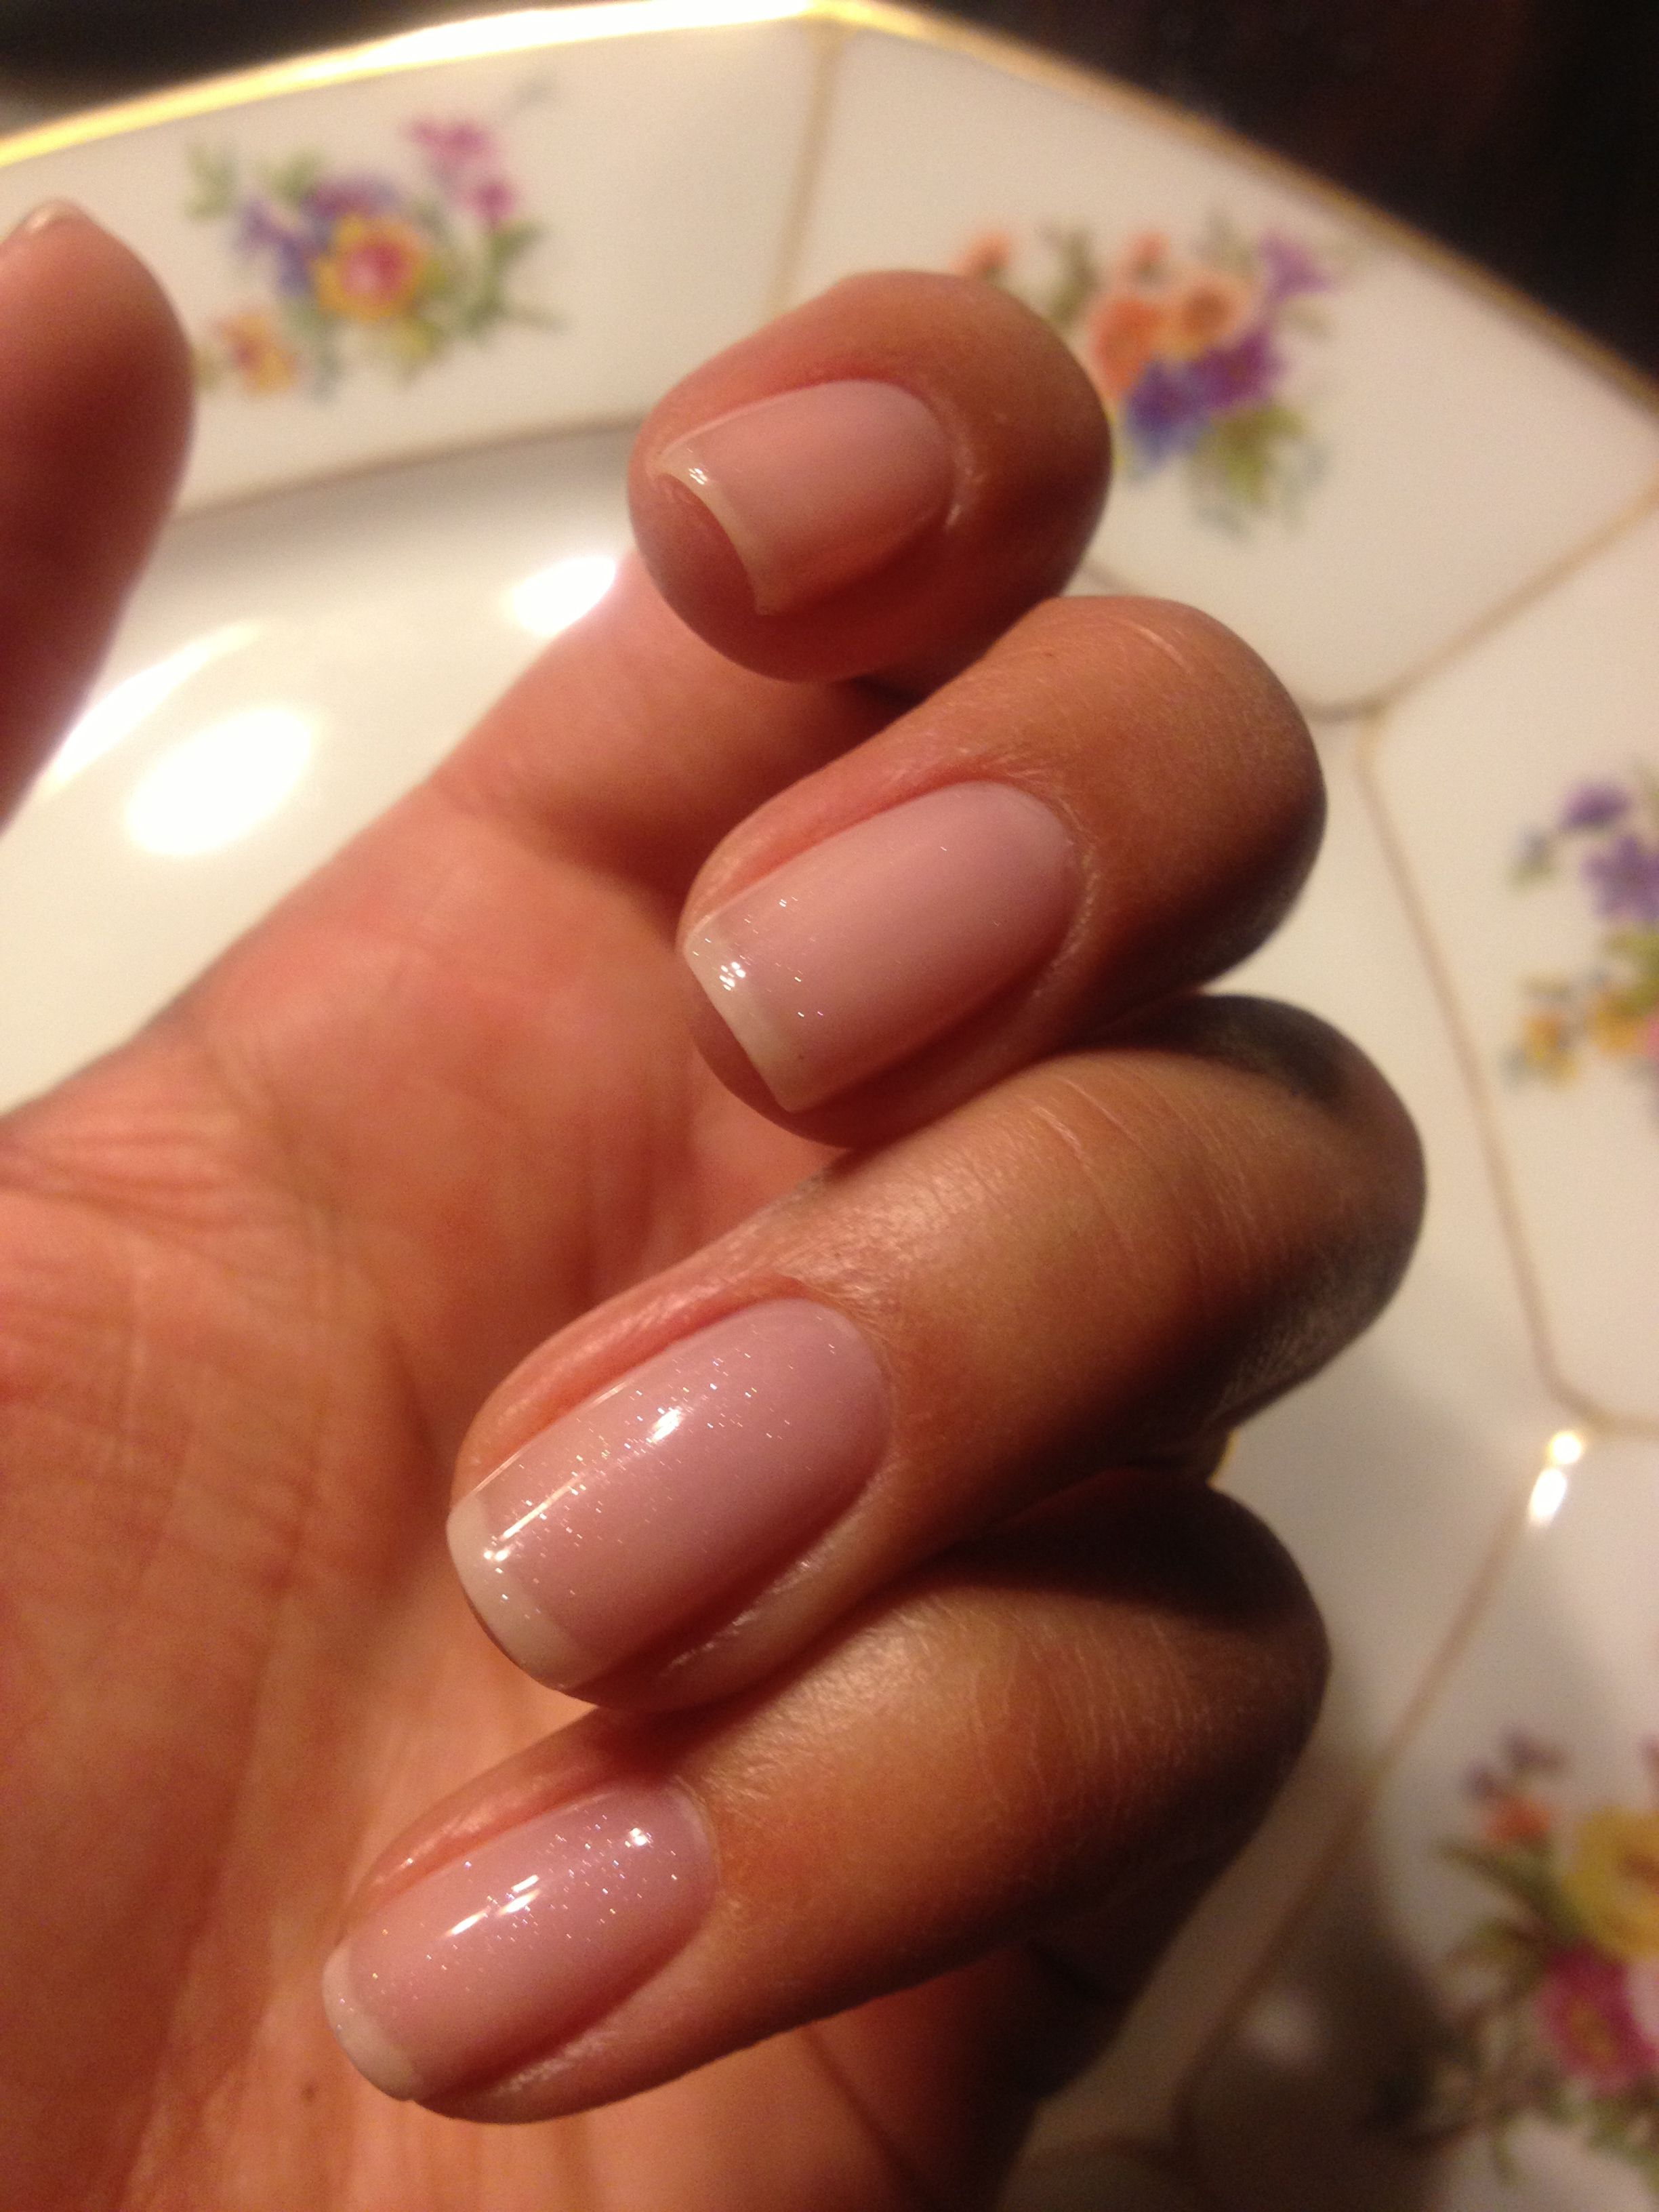 Pin By Dressed In Time On Beauty Clear Gel Nails Manicure Gel Manicure